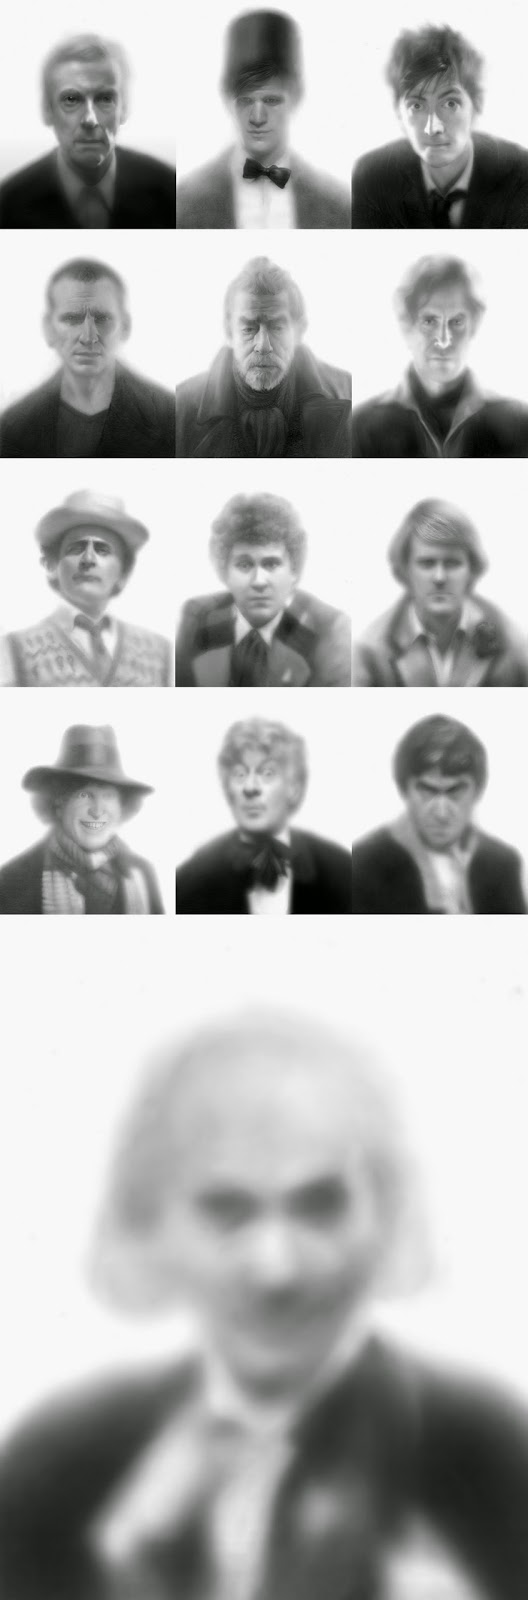 The 13 DOCTORS (a 52 Weeks Project series)